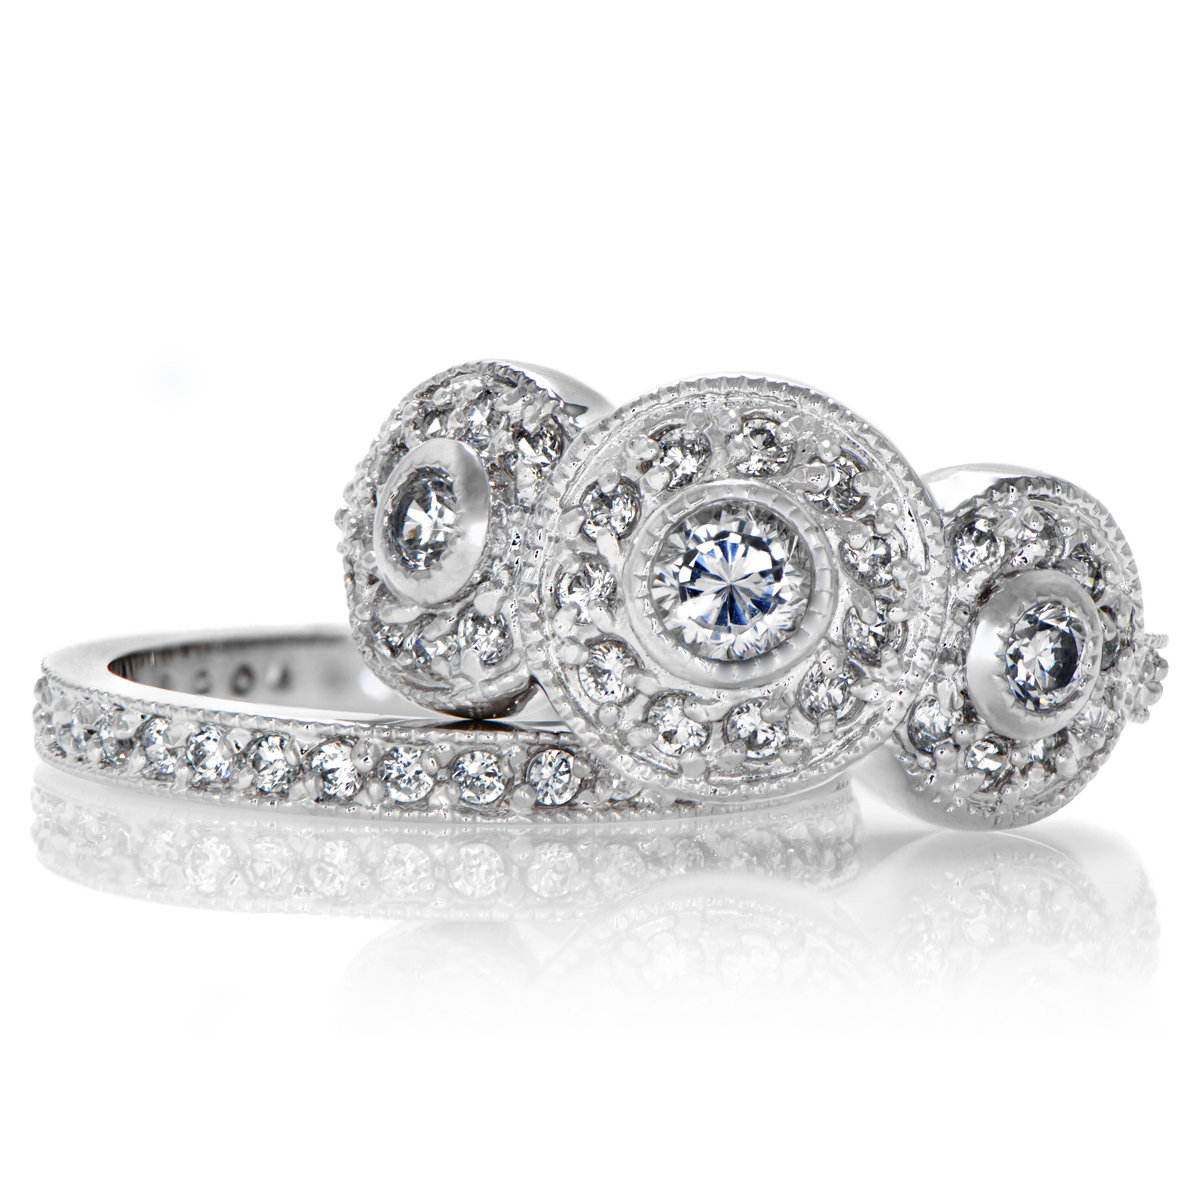 Vintage style wedding sets mature milf for Vintage wedding rings sets